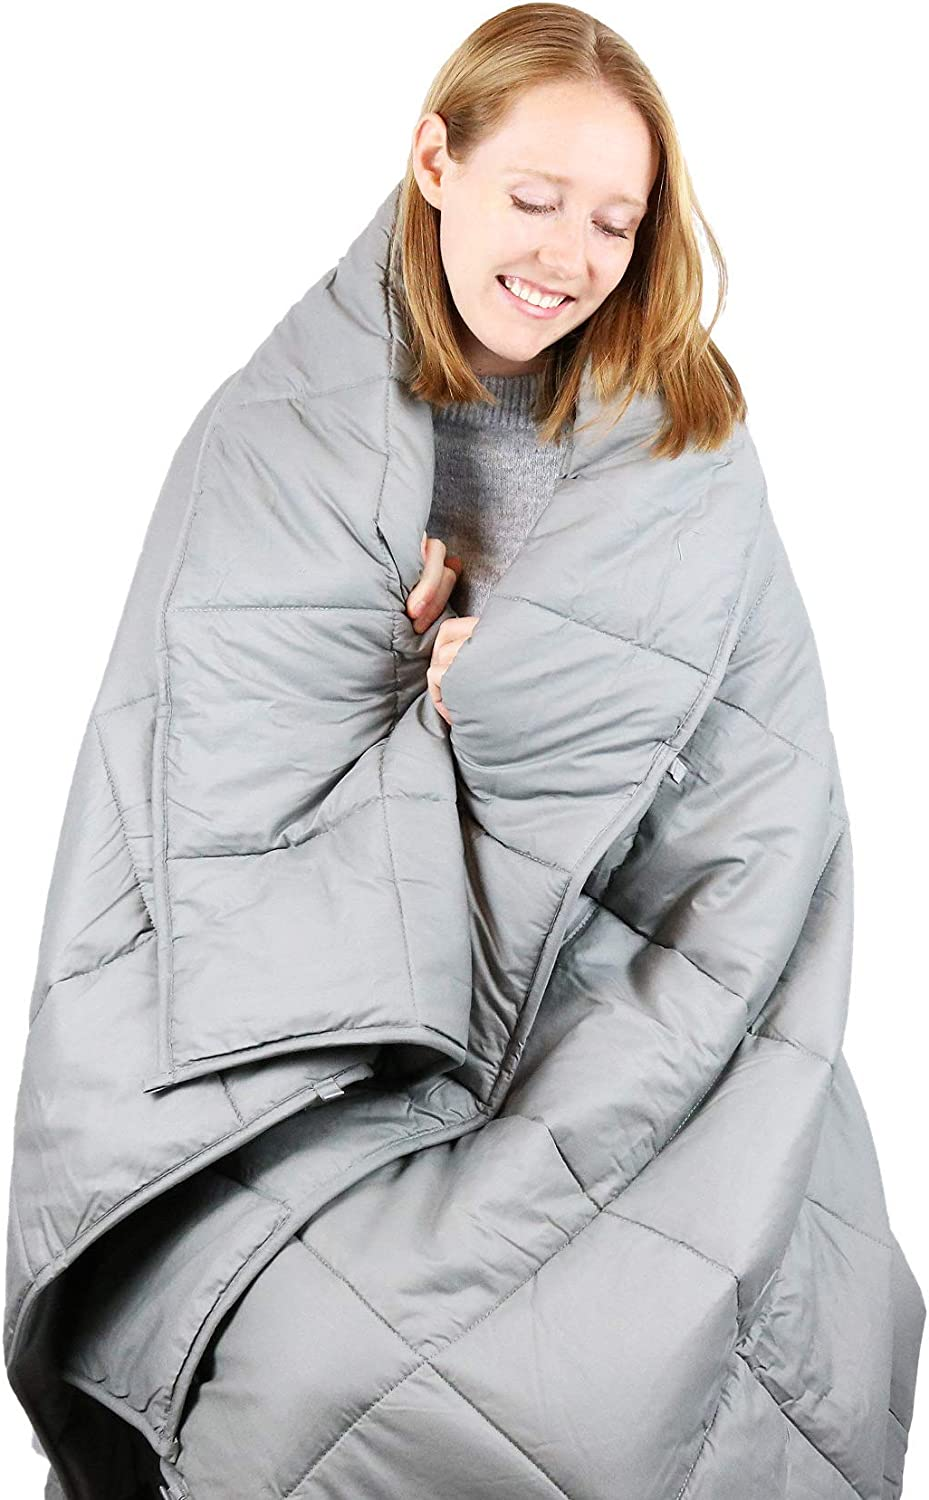 Cooshi Adult 15 lb Weighted Blanket Queen Size | Cotton 60x80 | Grey Heavy Blanket and Comforter | Glass Beads | For Adults less than 160 lbs